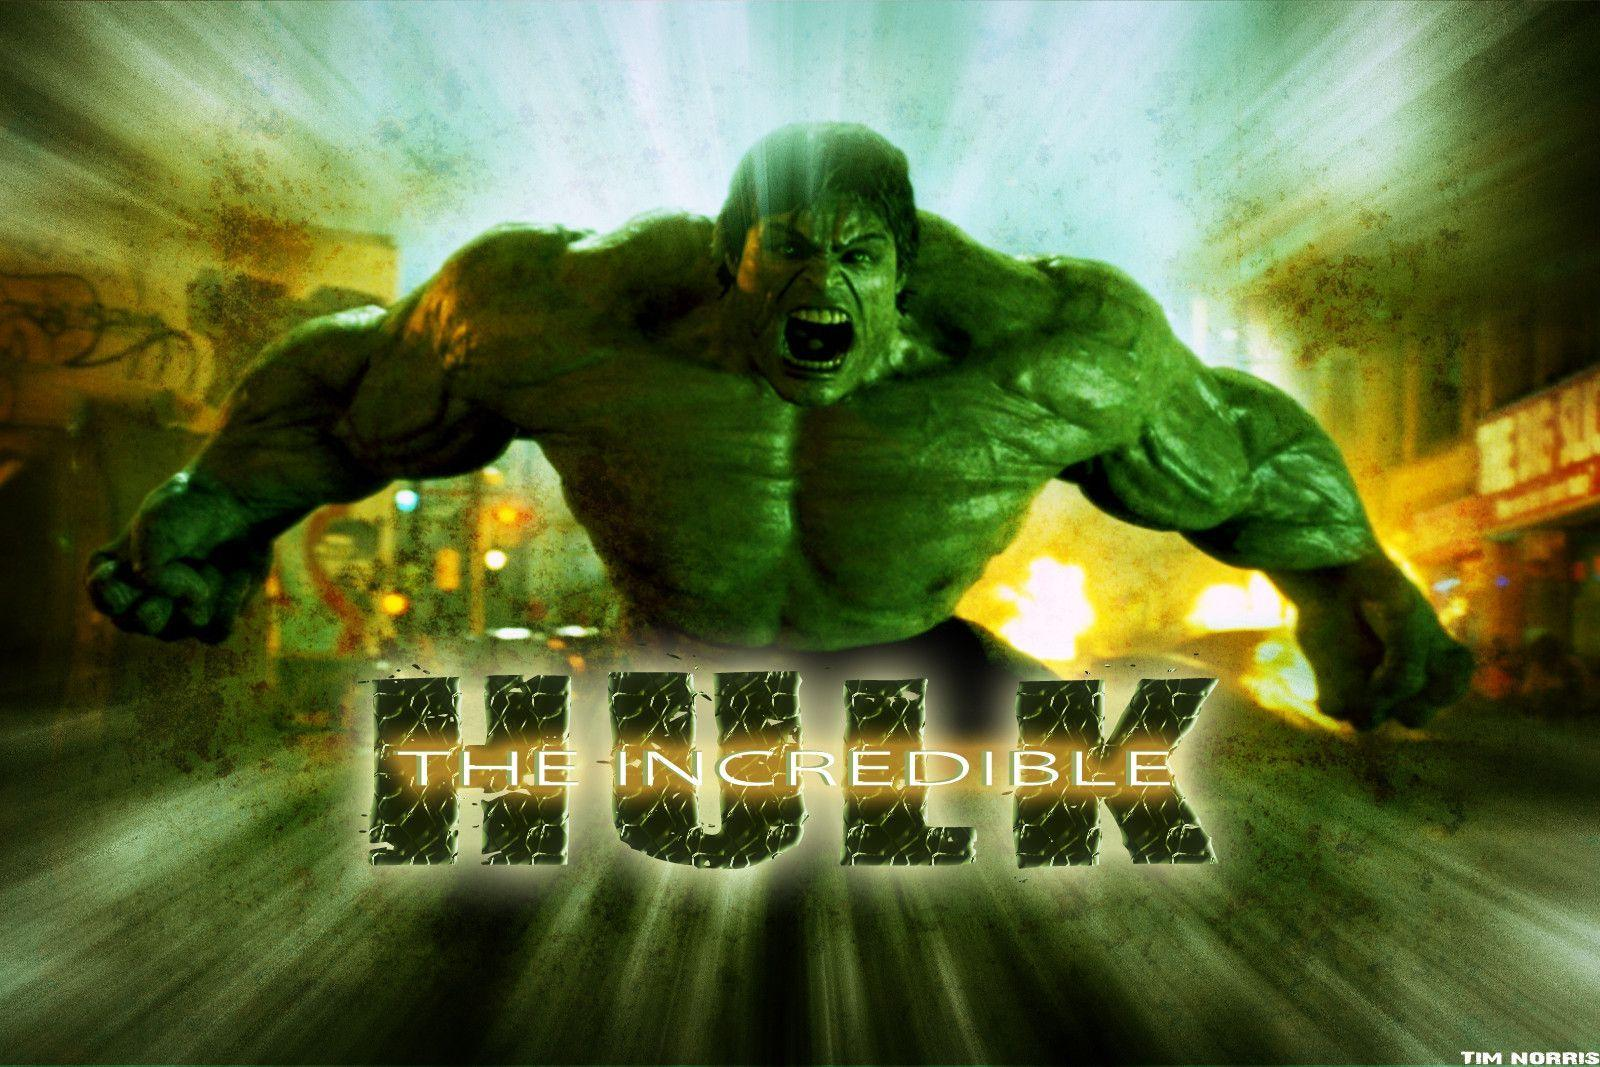 The Incredible Hulk Wallpaper - Wallpaperish